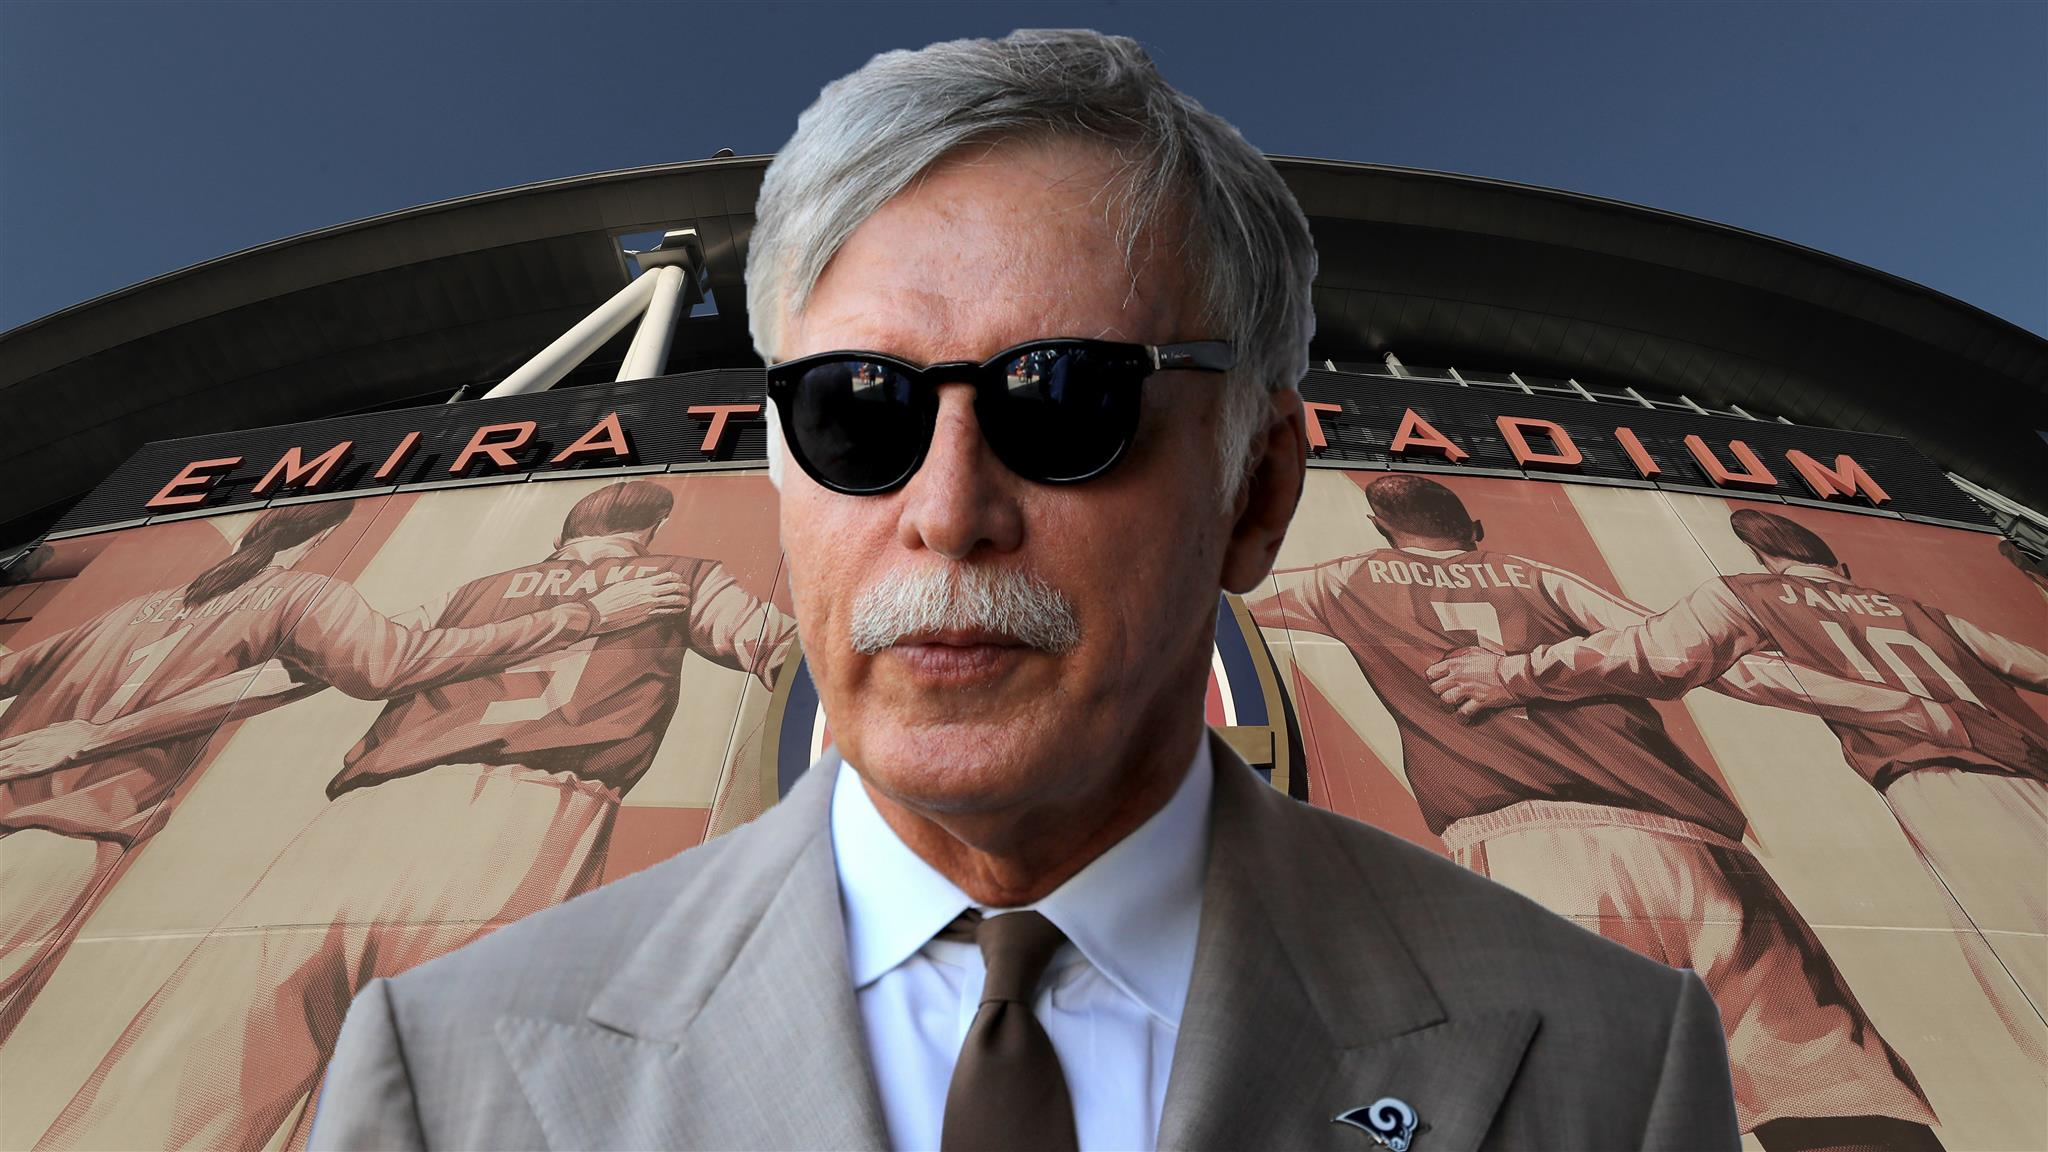 Arsenal takeover: Arsenal Supporters' Trust sends warning over Stan Kroenke bid